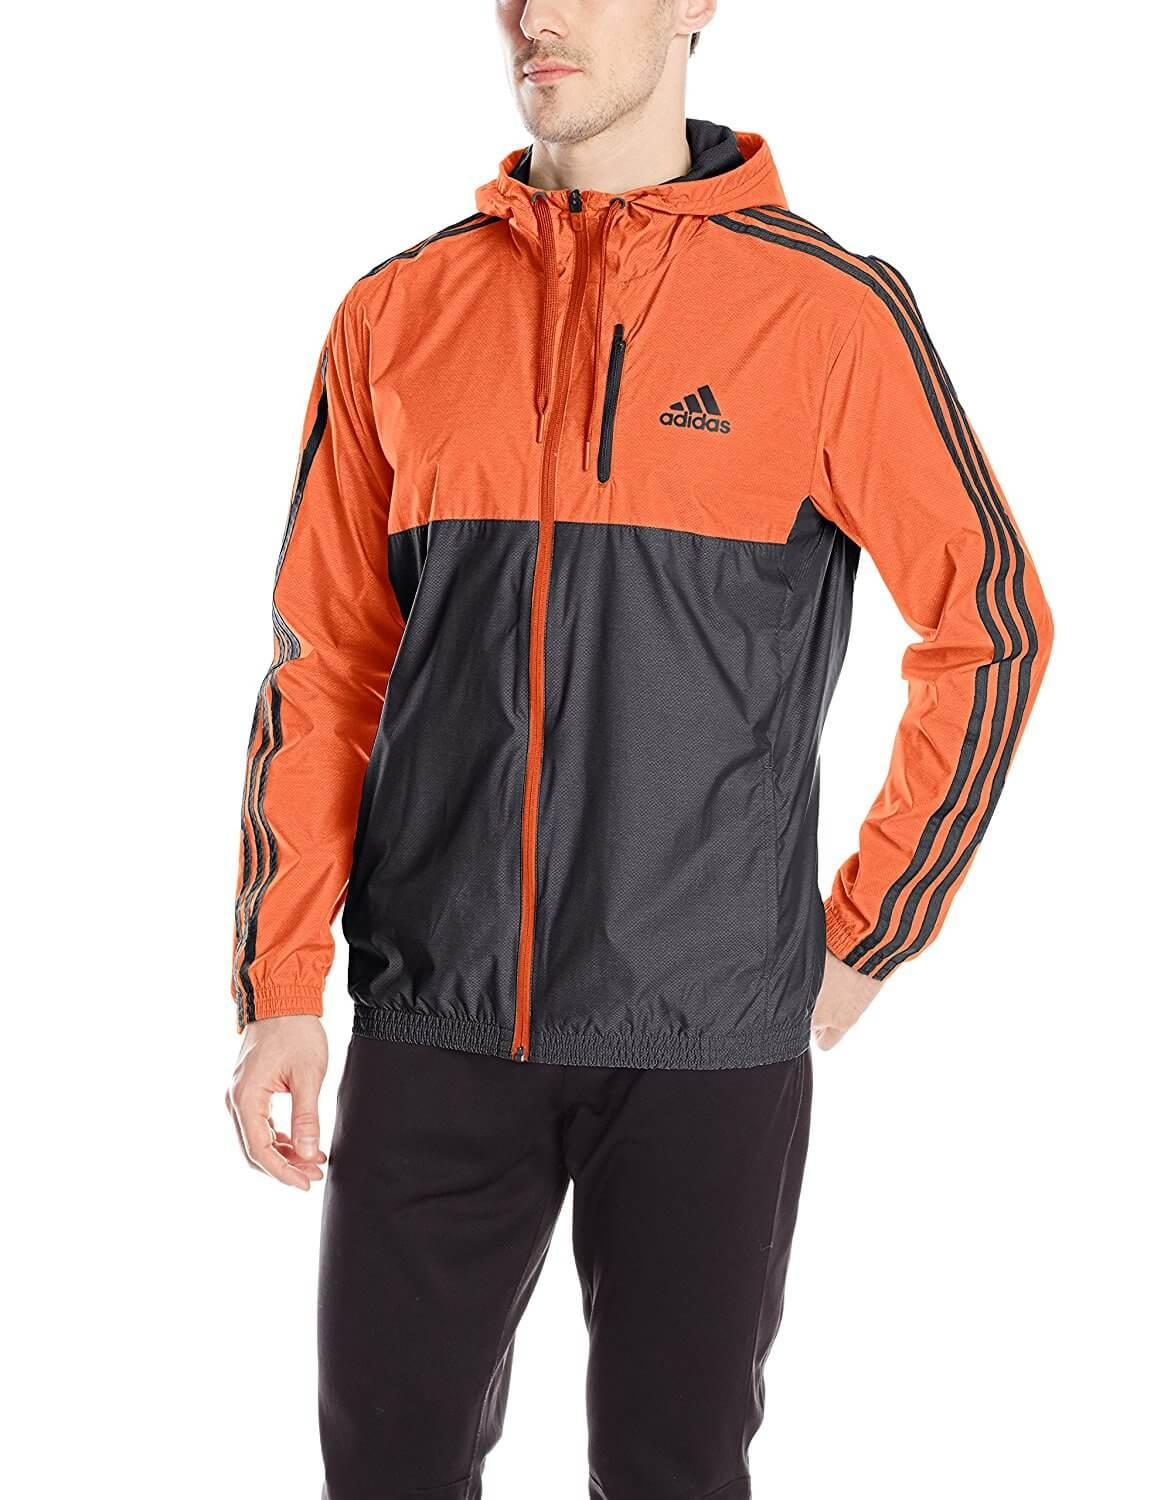 2. Adidas Men's Essential Woven Jacket